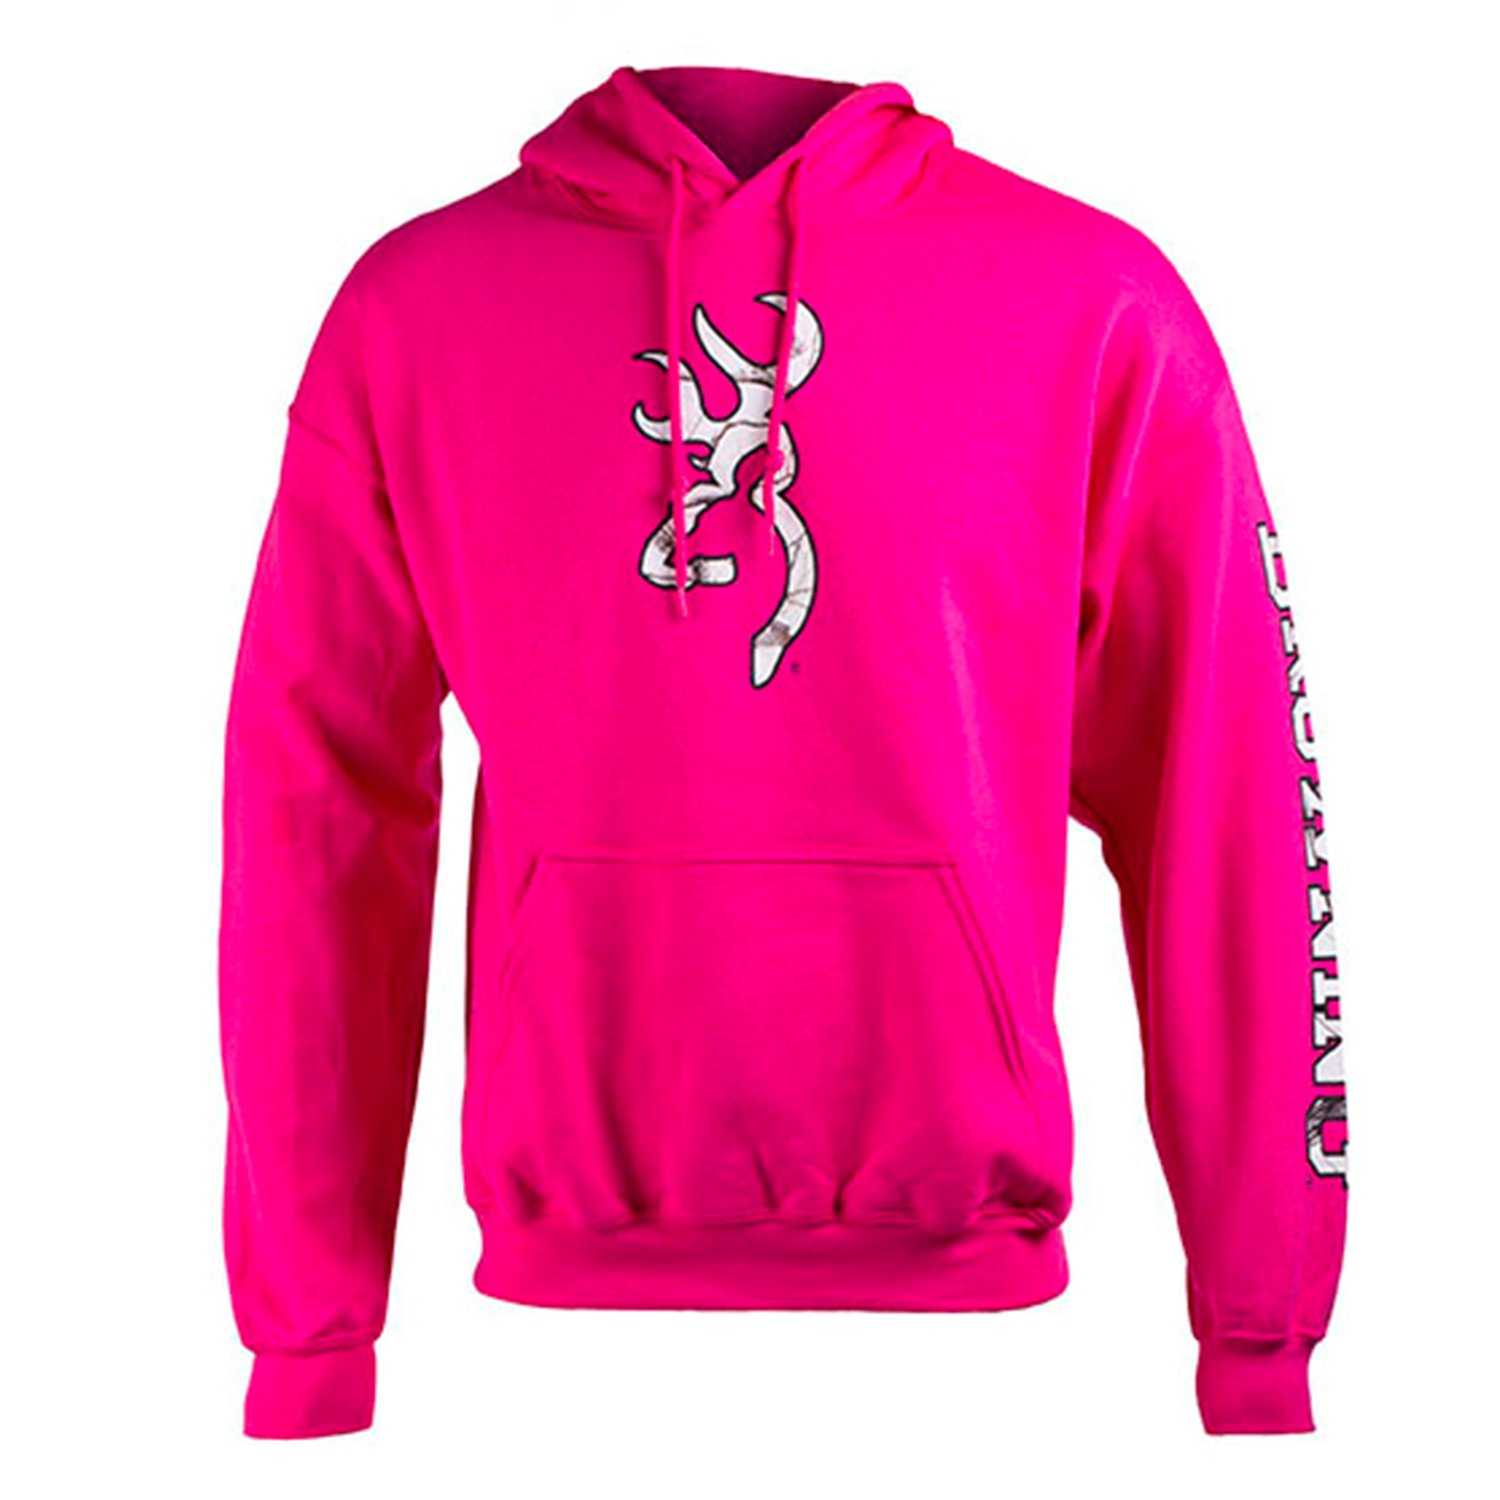 Browning Women's Two Hit Camo Screened Hoodie | Realtree APC | Pink | Large